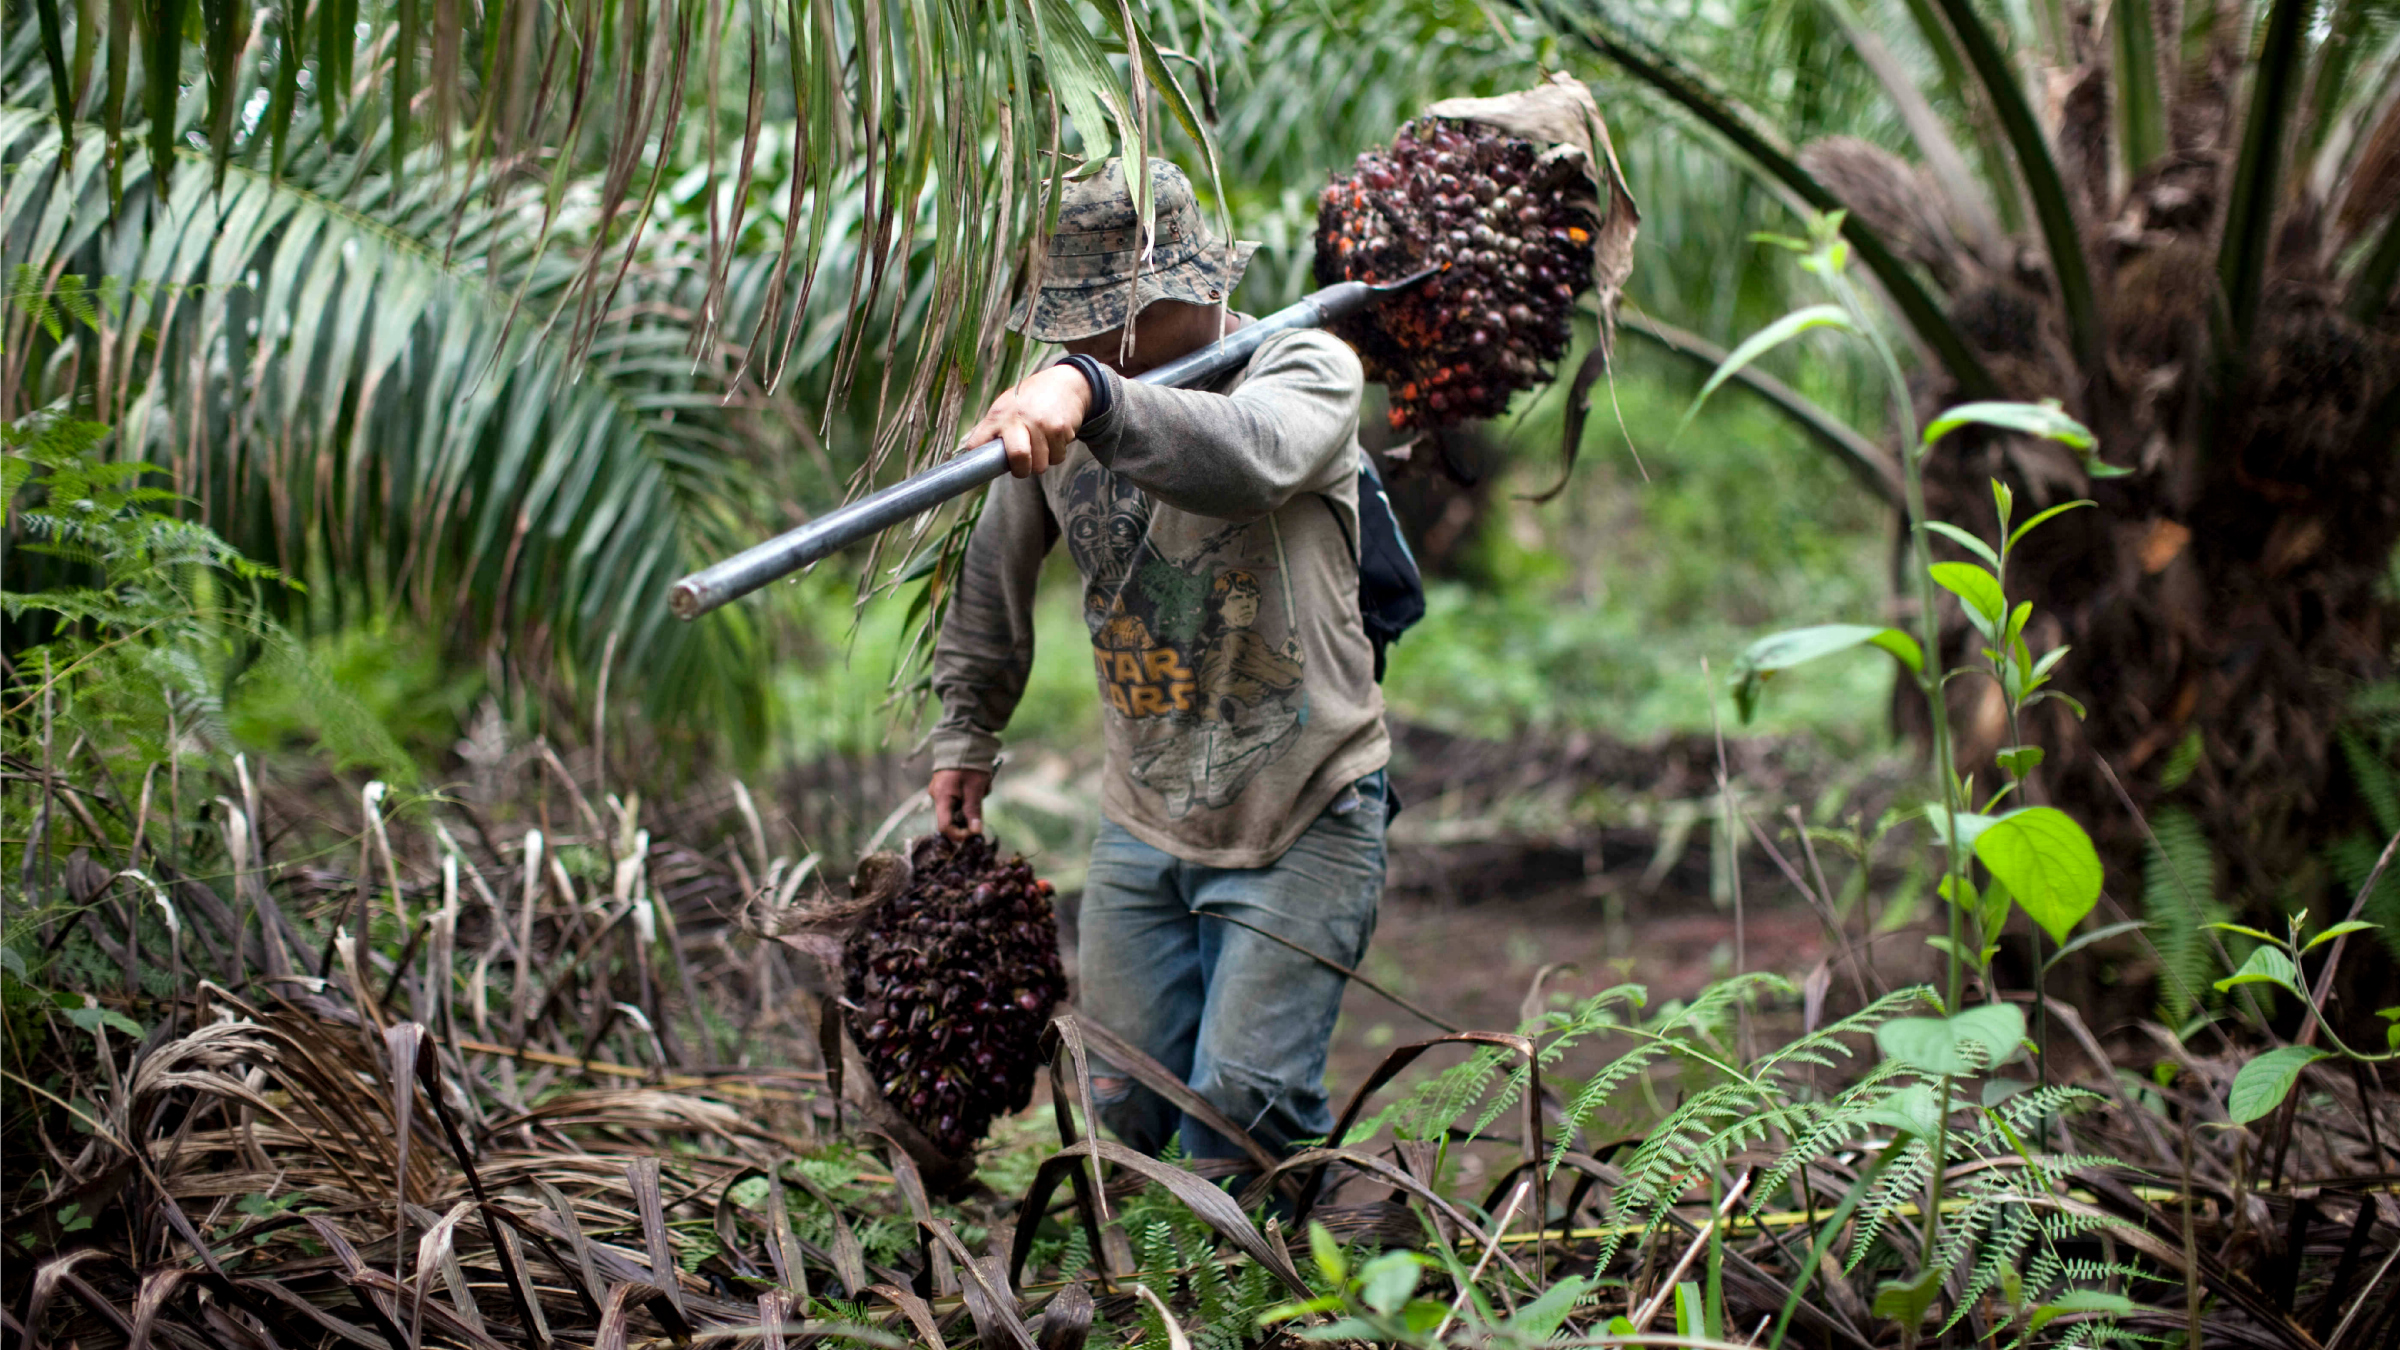 Indonesian oil palm plantation workers outdoor fuck - 3 6